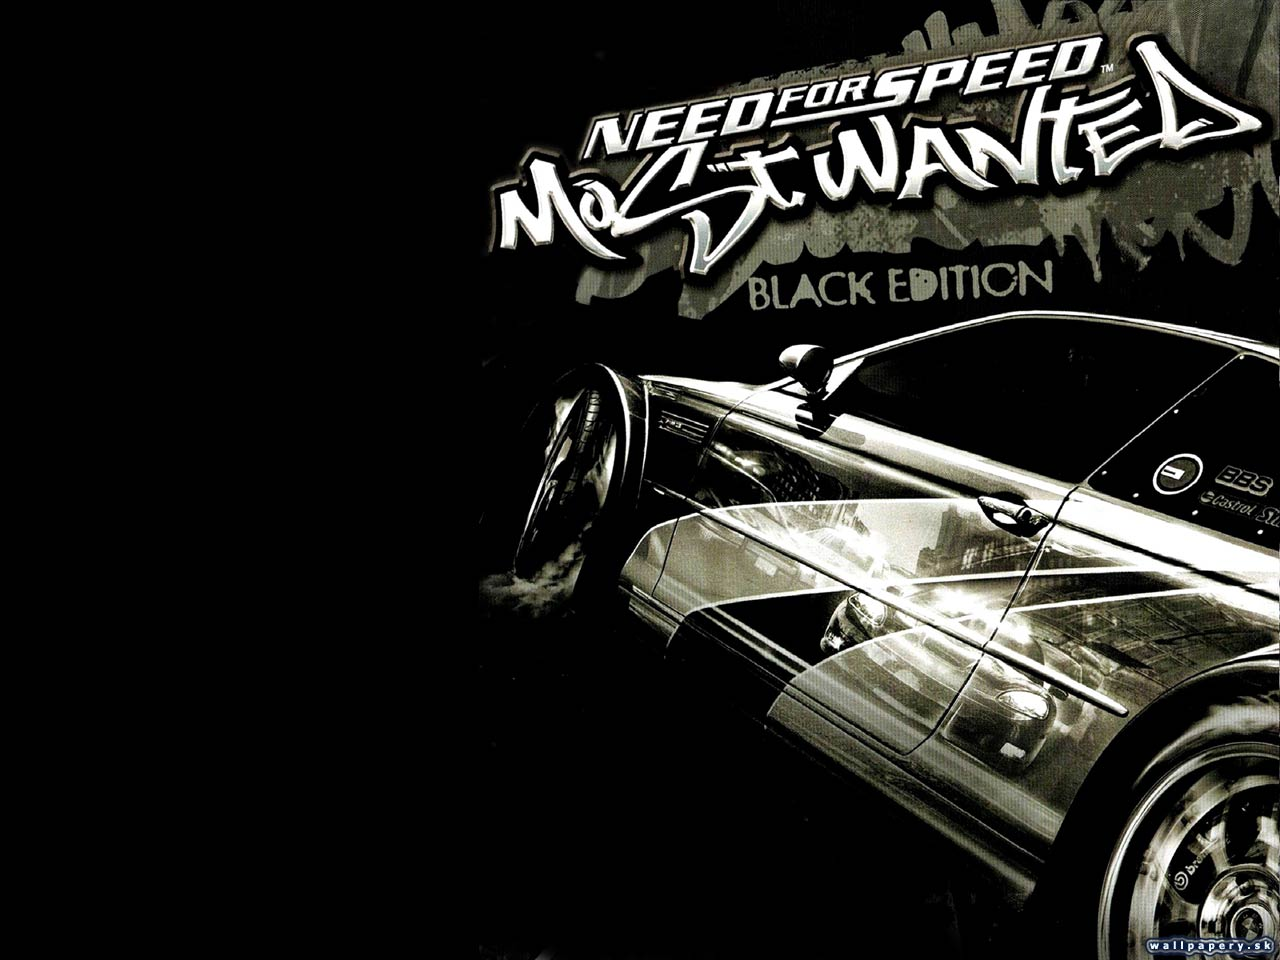 Need For Speed Most Wanted 2 Revealed By E3 Schedule